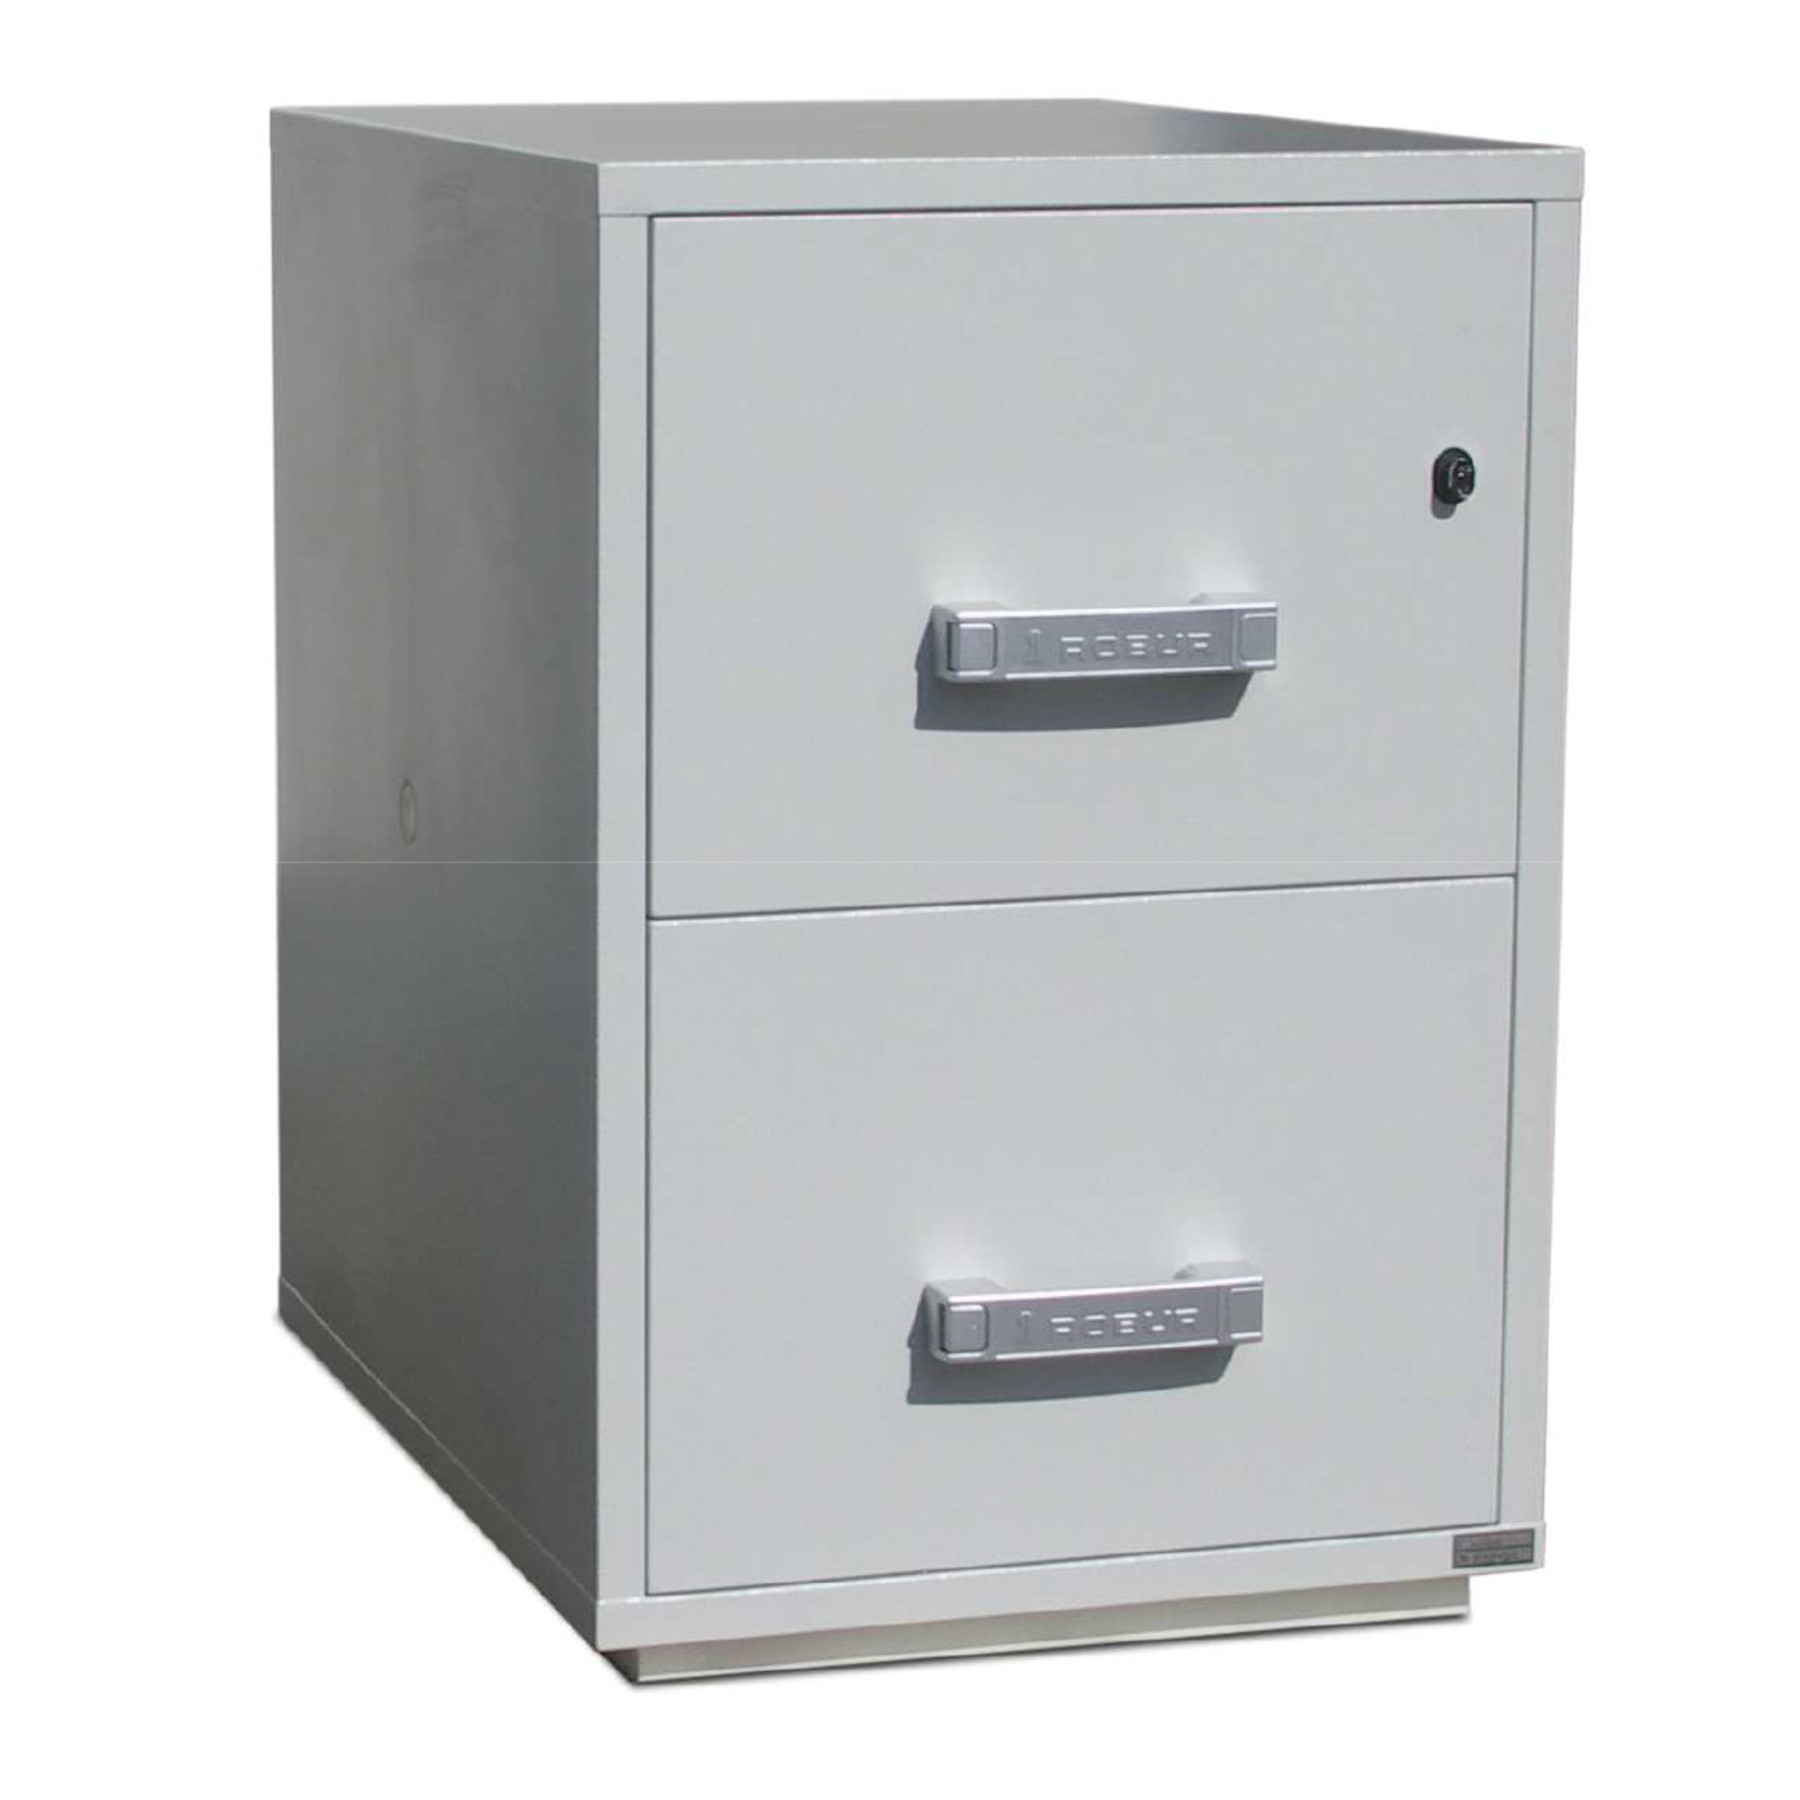 fire alarm document cabinet 100 images untitled document filing cabinets in trinidad. Black Bedroom Furniture Sets. Home Design Ideas